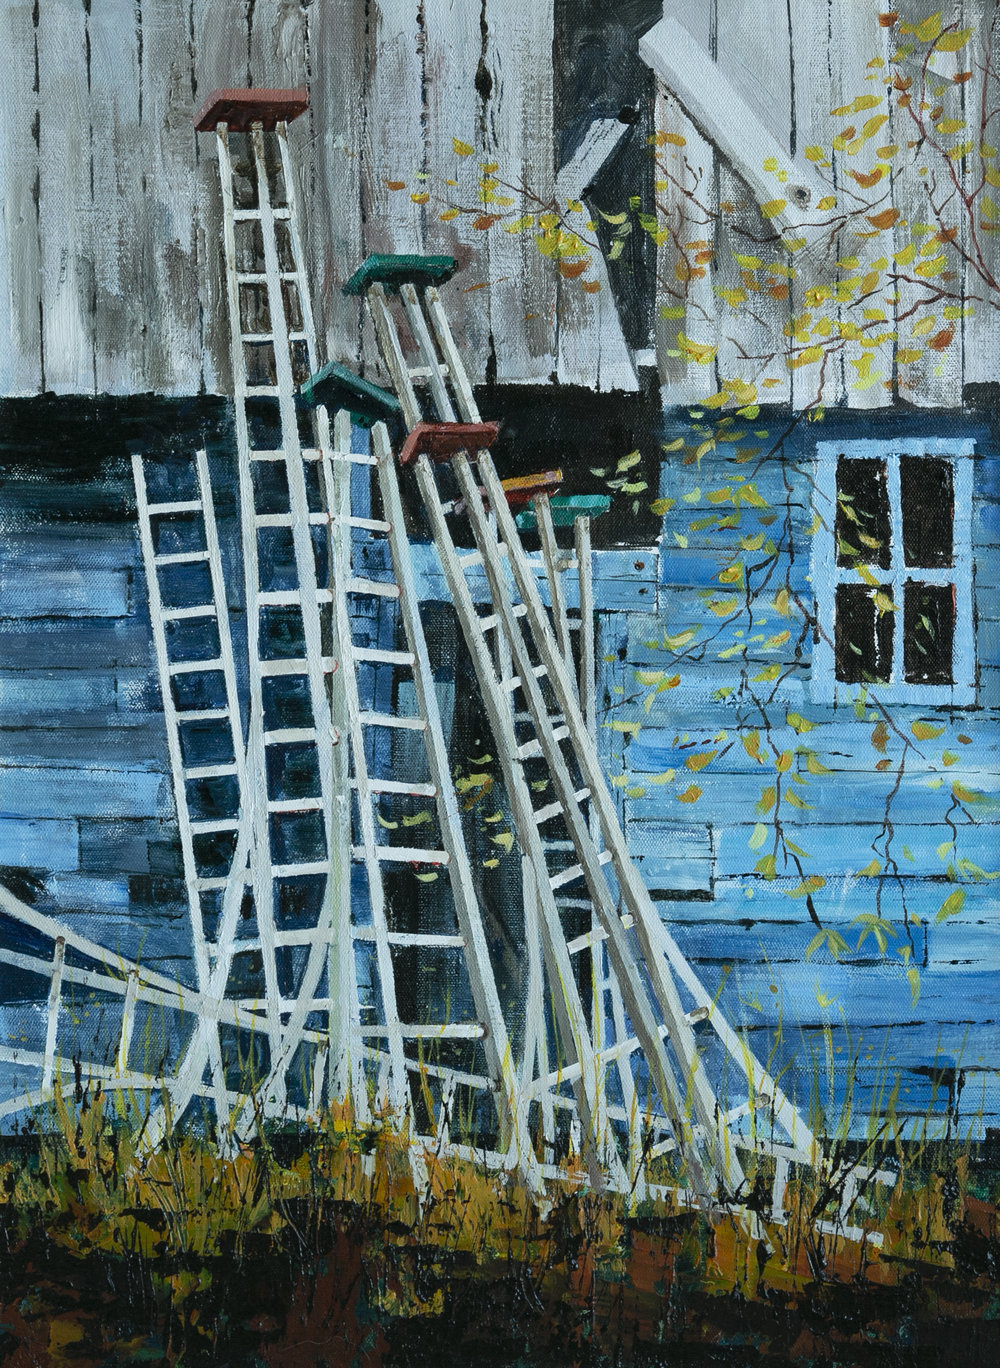 Orchard ladders in Summerland